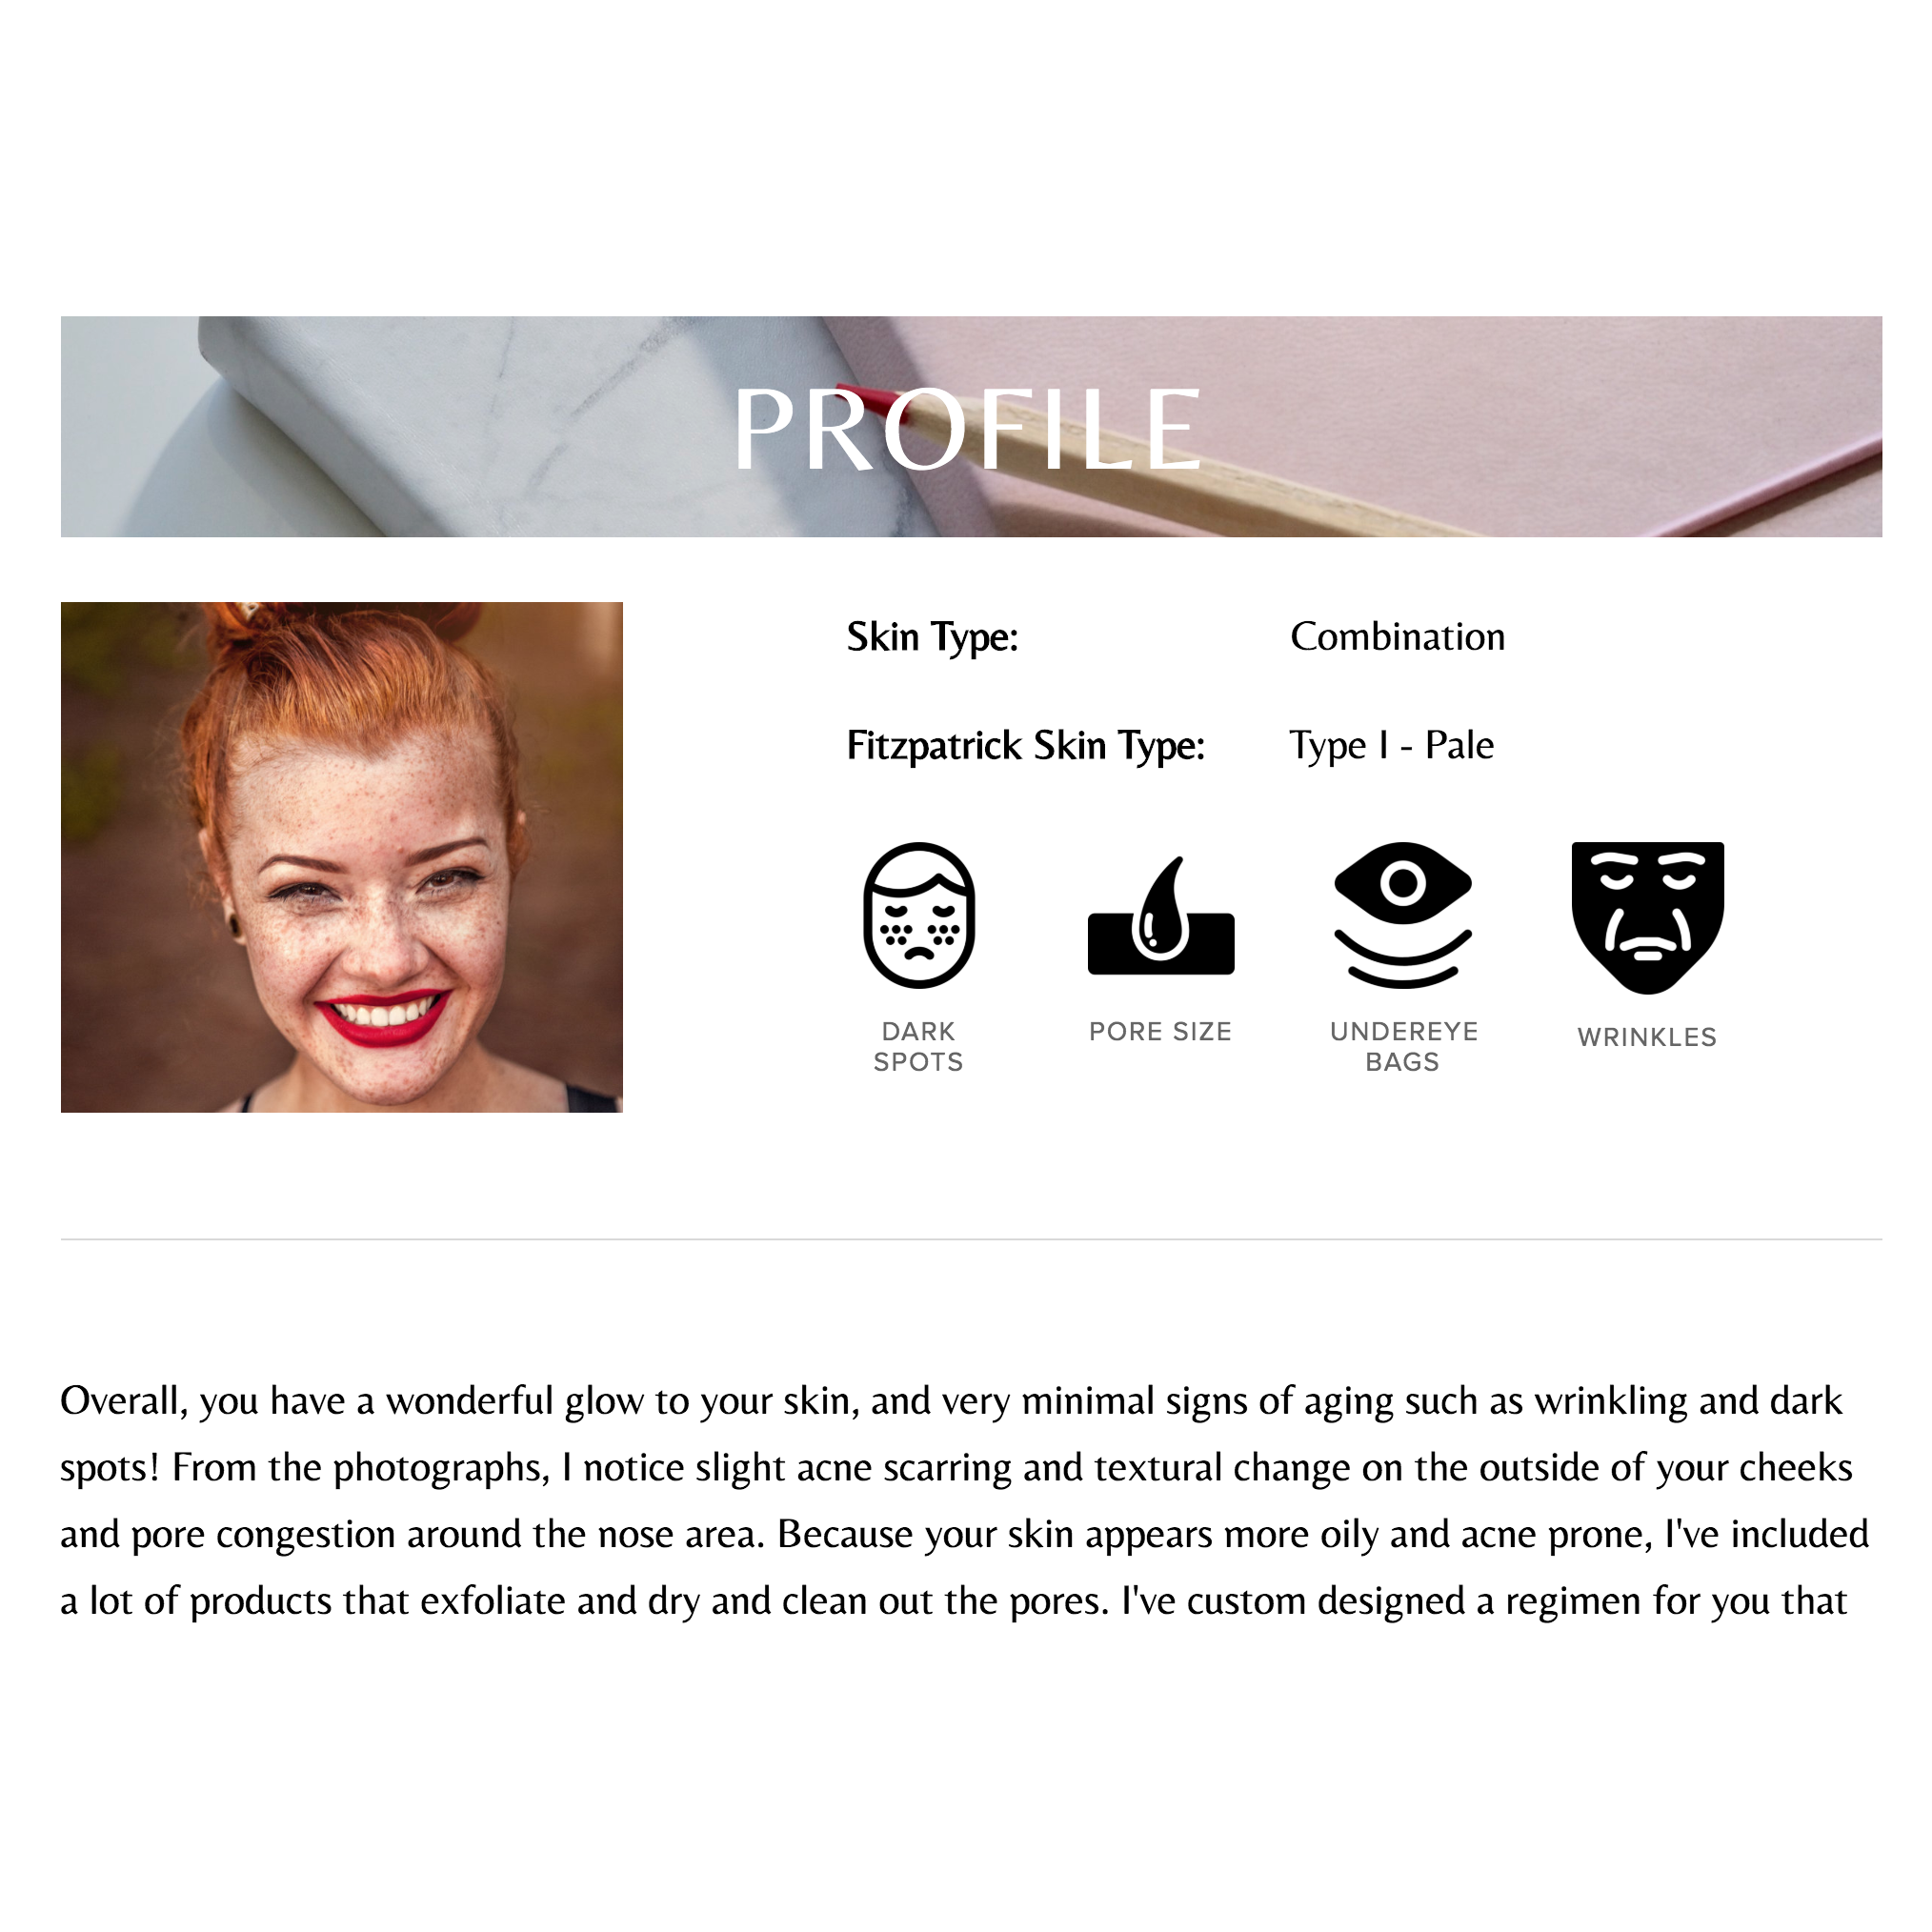 SKIN PROFILE - Detailed insights on your current skin condition and goals.